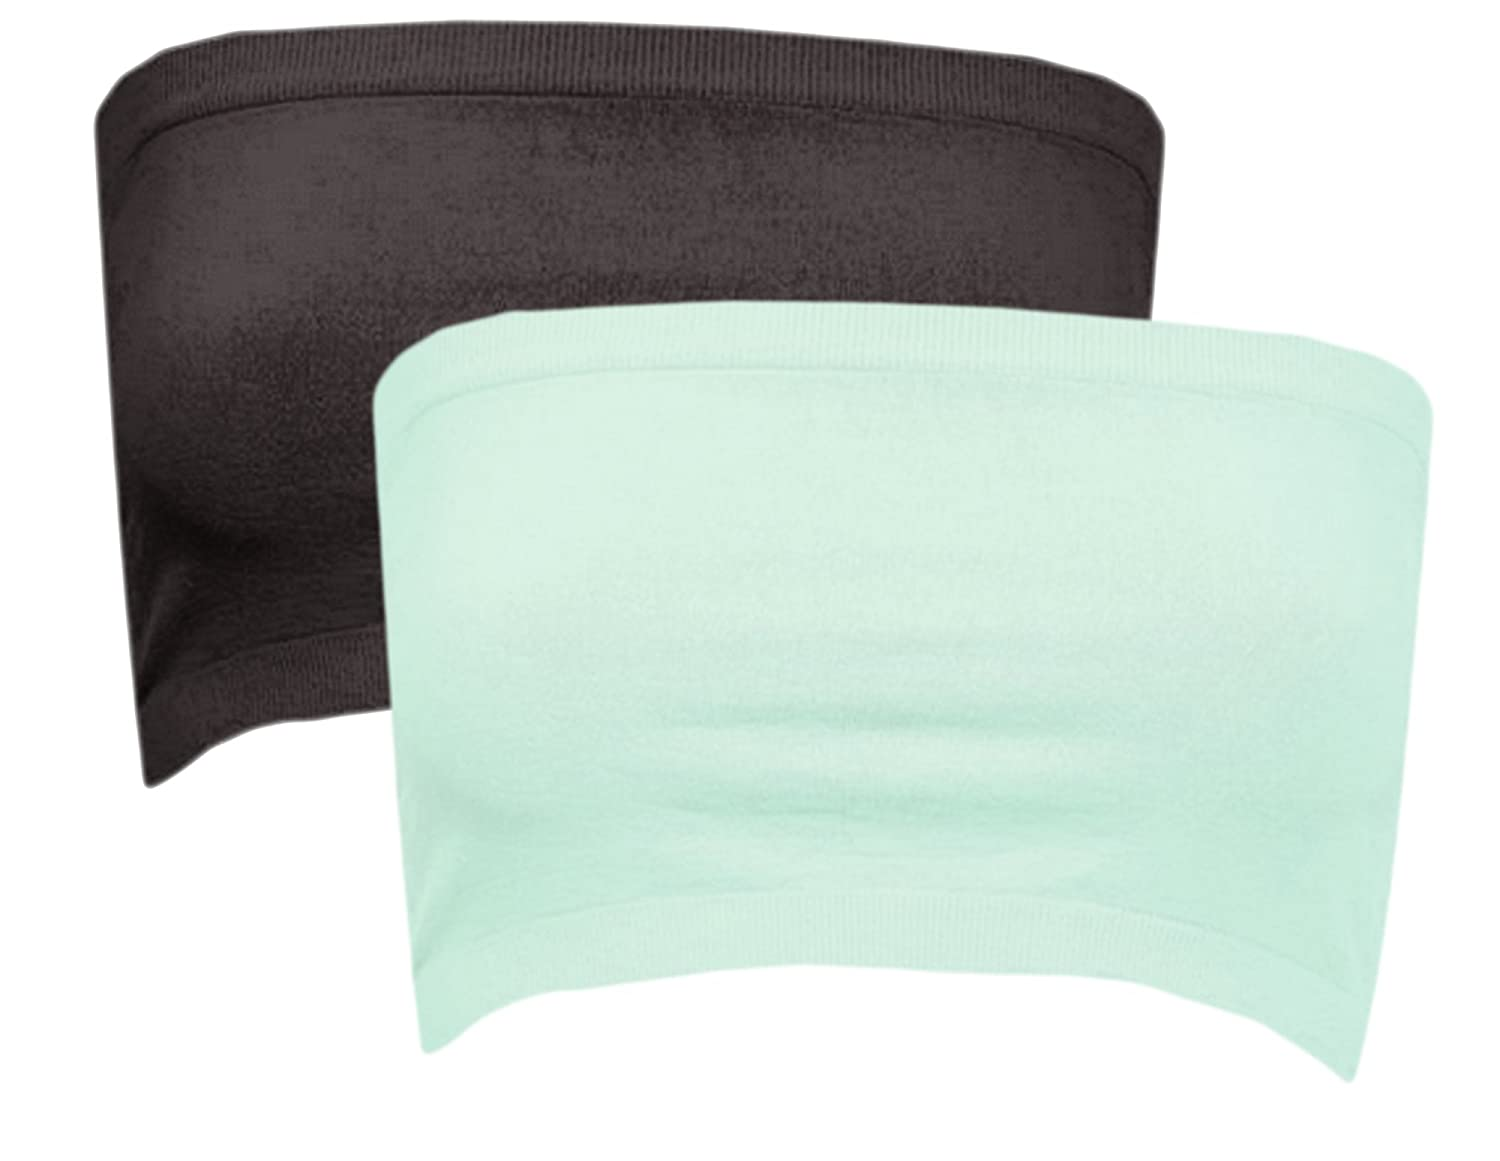 Niki Biki Nylon/Spandex Seamless Strapless Tube Top Bandeau Bra Cover (One Size, 2 Pack: Black/Lucite Green)